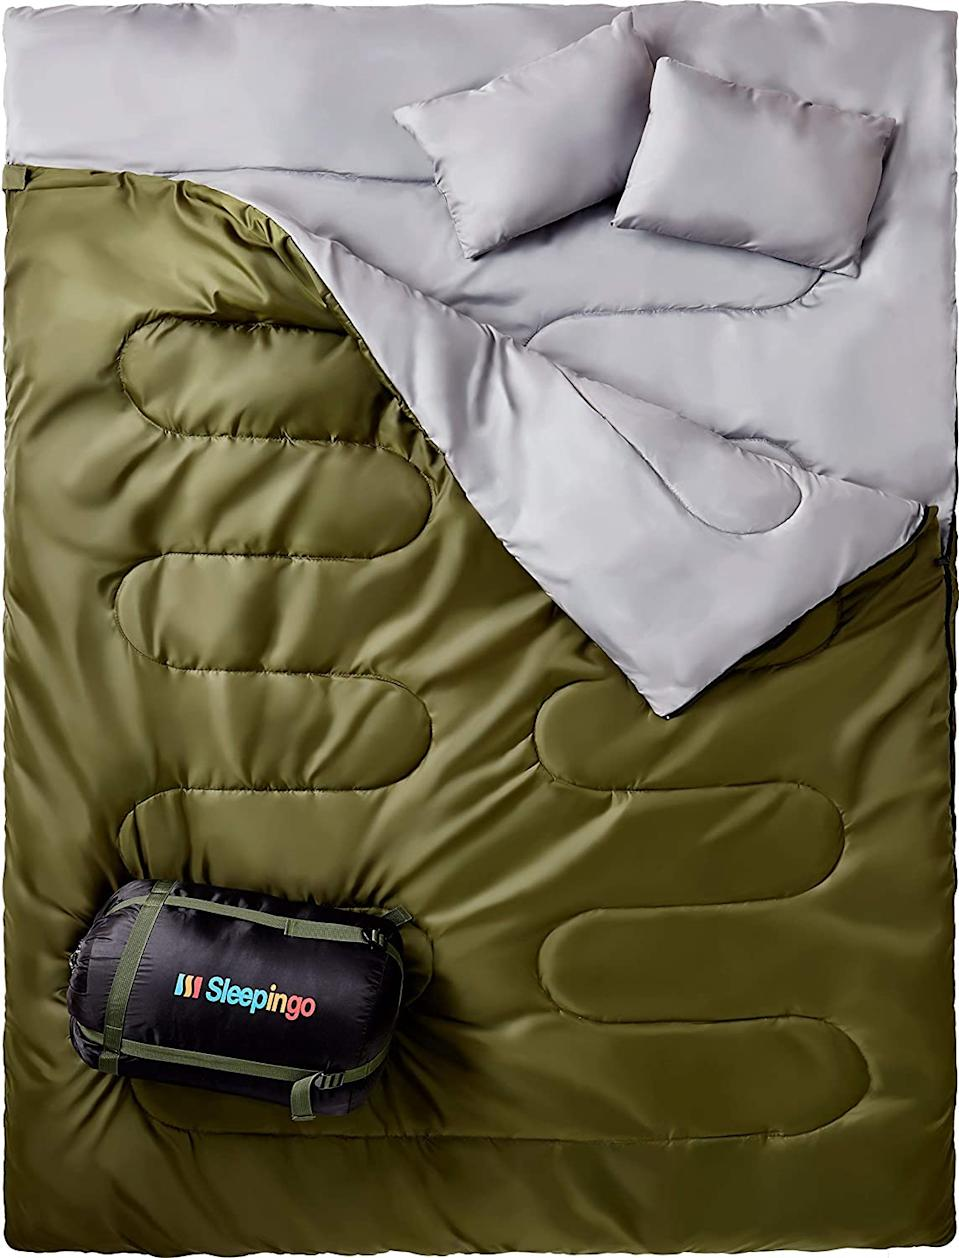 Sleepingo Double Sleeping Bag (Photo via Amazon)